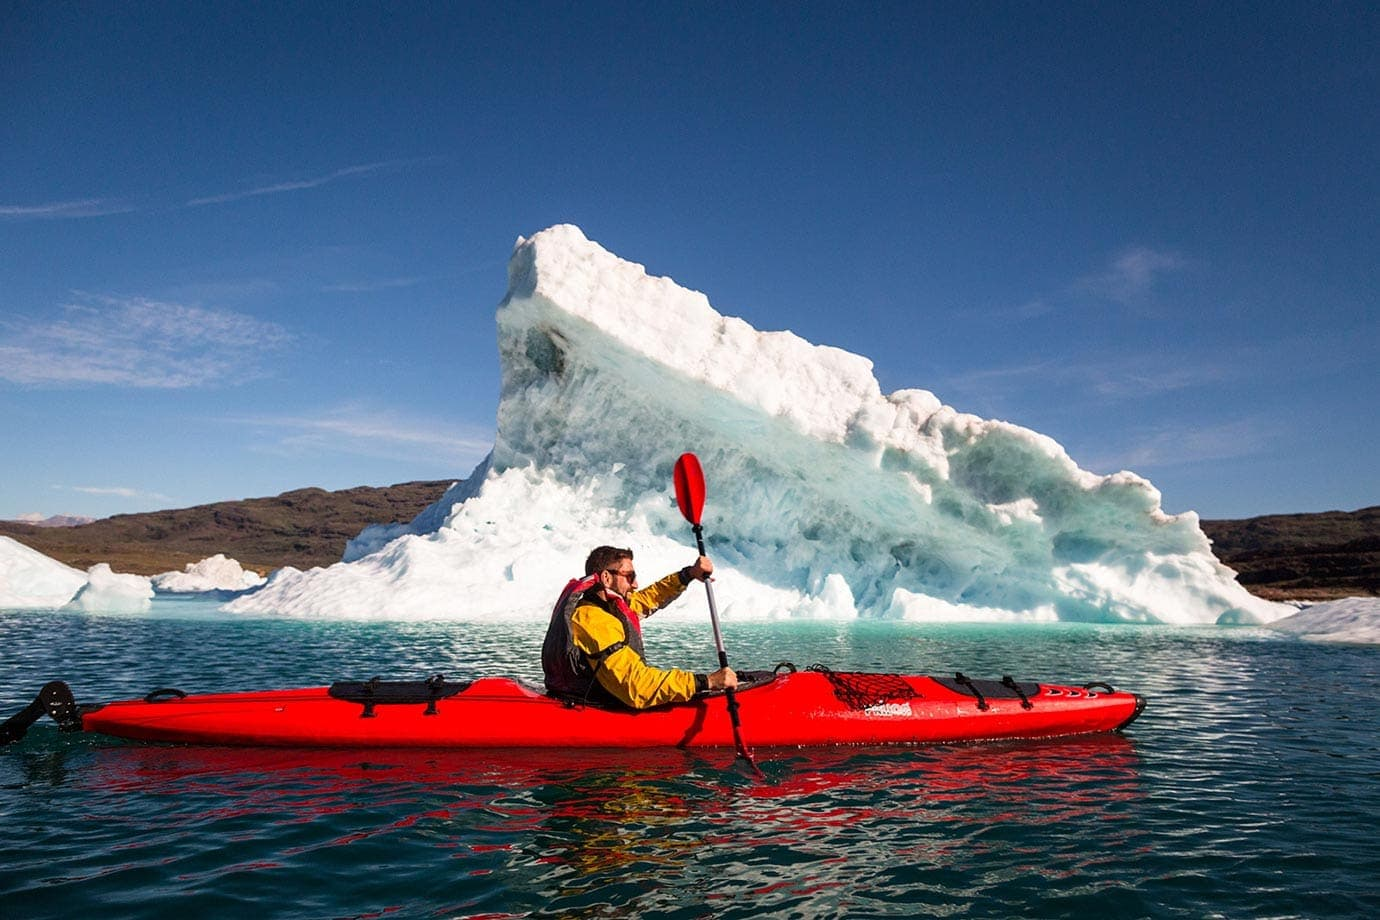 Kayaking with Icebergs in Greenland